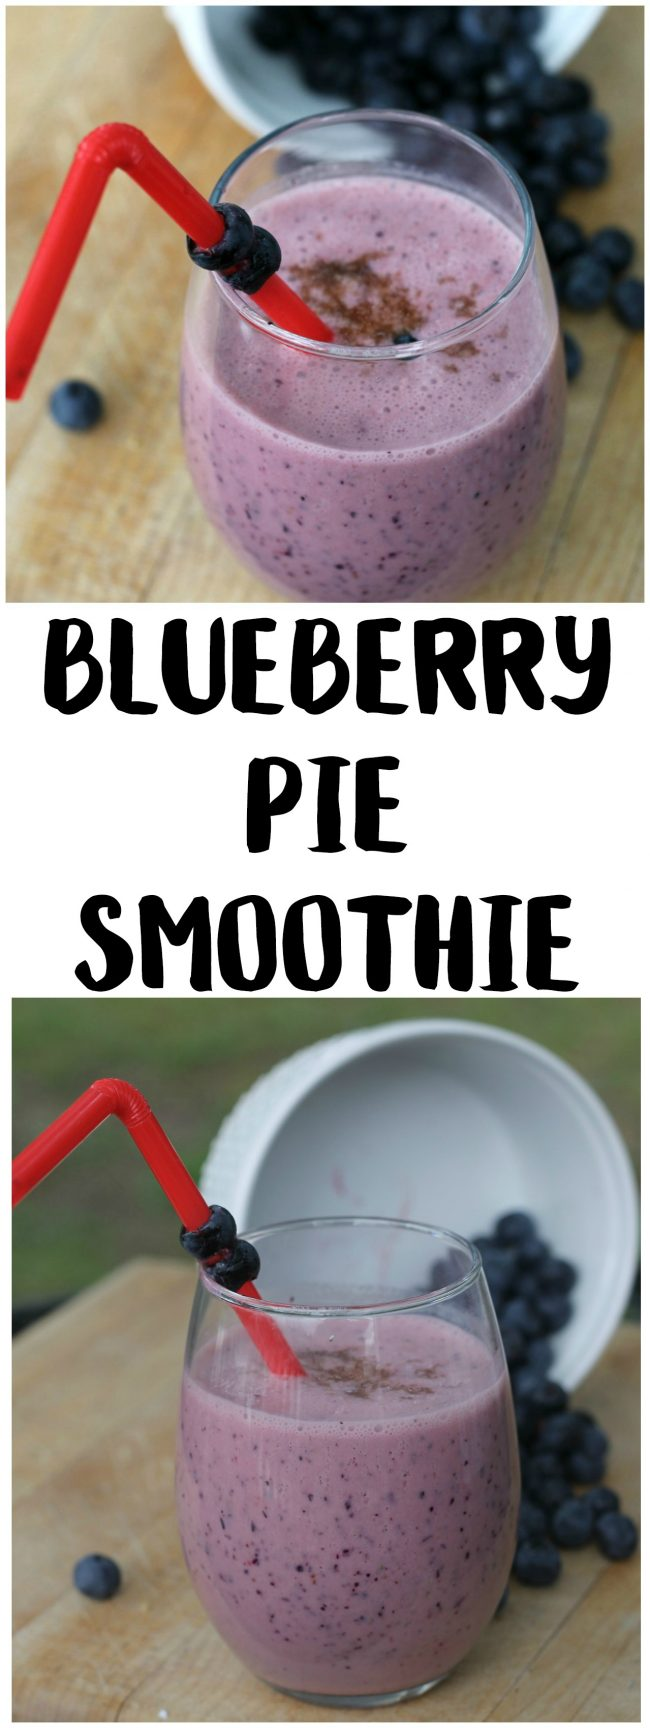 Smoothies have so many uses- they can be good for weight loss, a good way for kids to eat more fruits and vegetables, and can make an easy on the go breakfast. Check out this Blueberry Pie Smoothie Recipe for a treat!